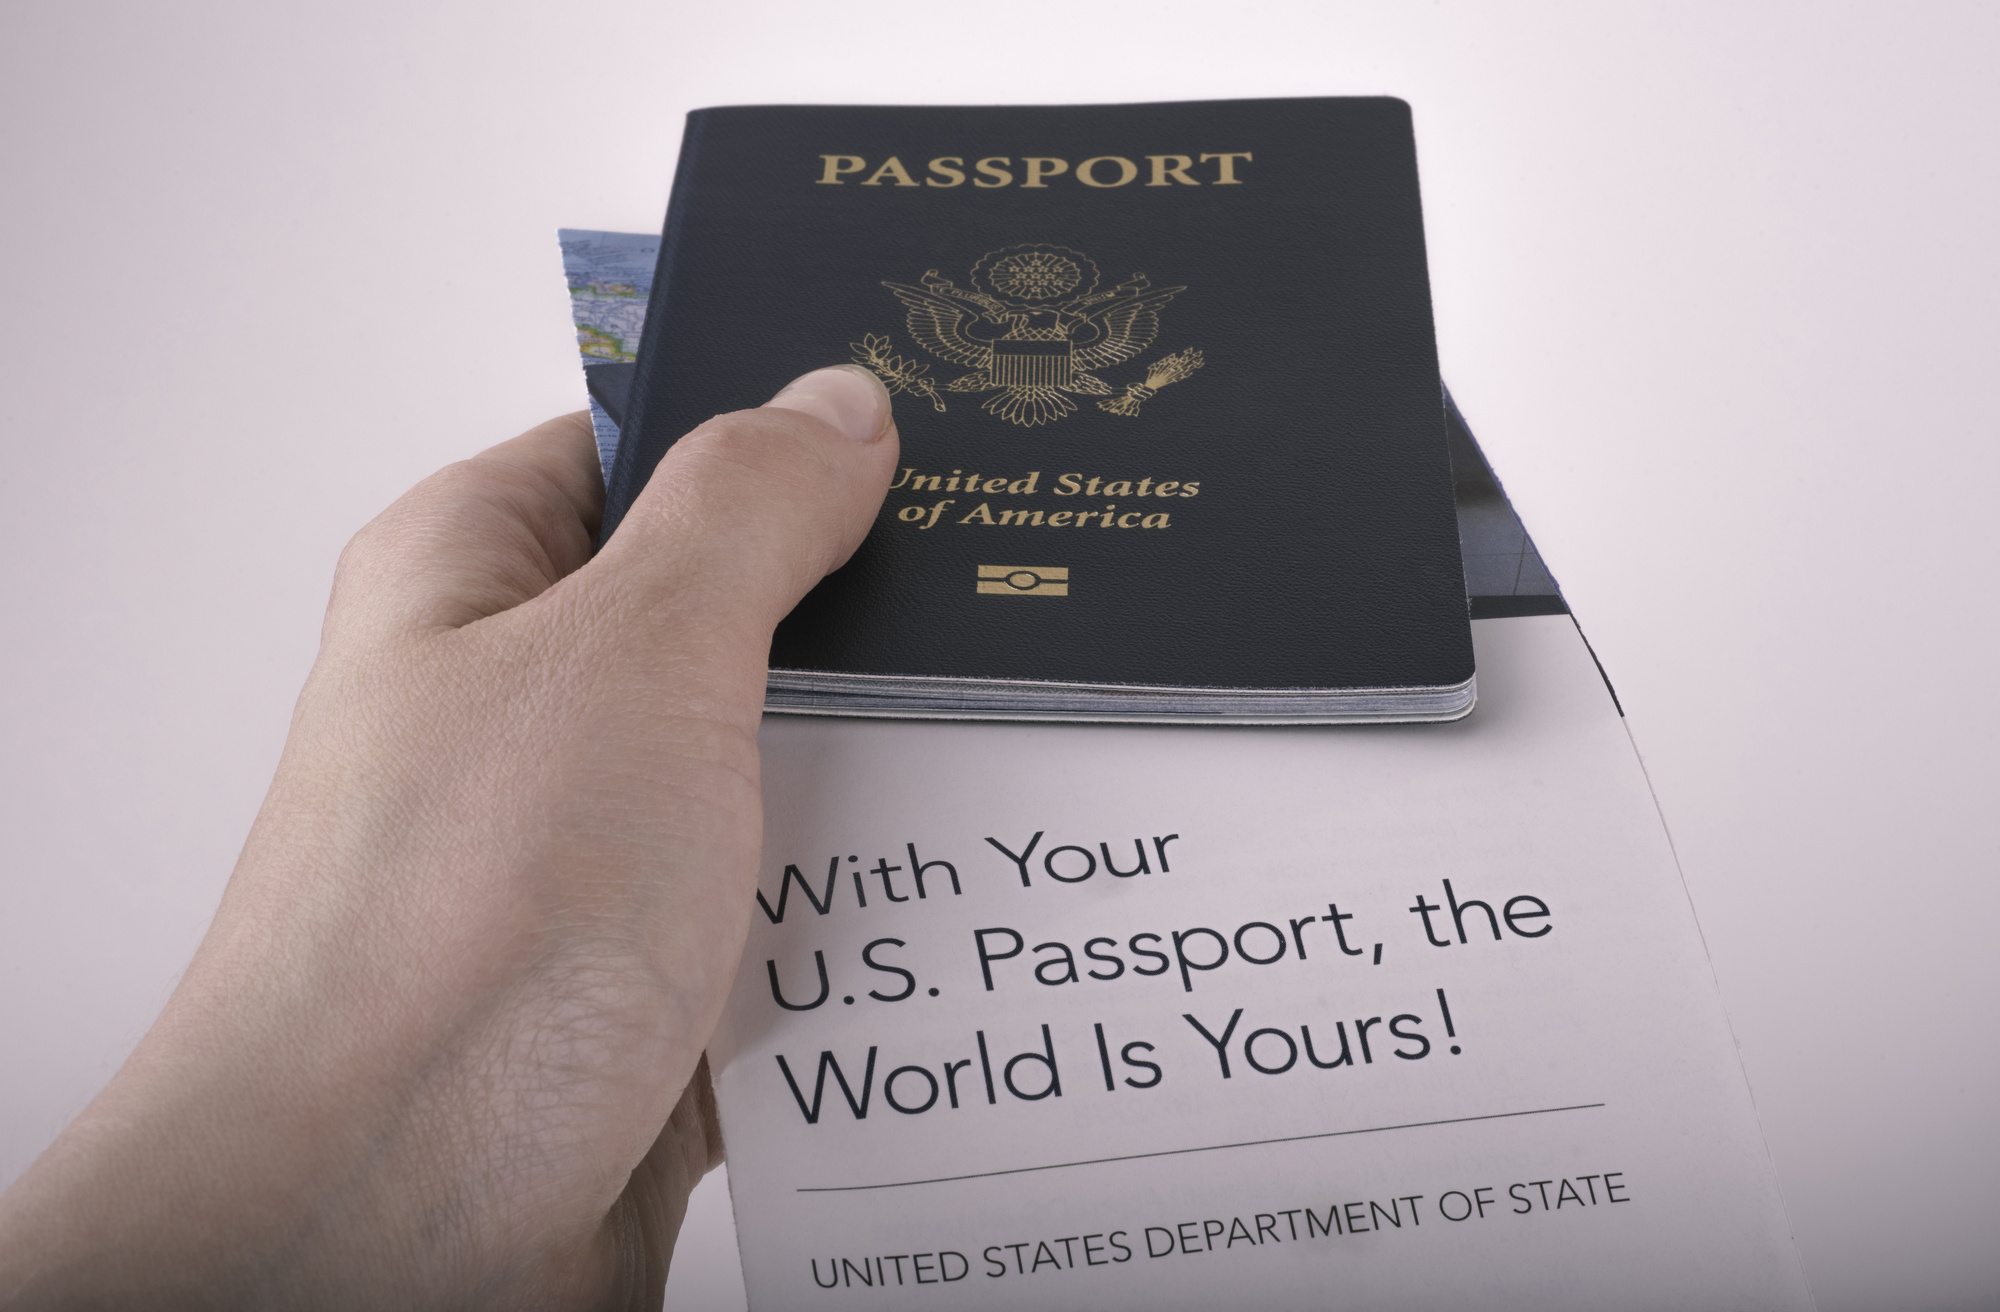 24 Hour Passport Services Getting Your Passport Expedited In 24hrs